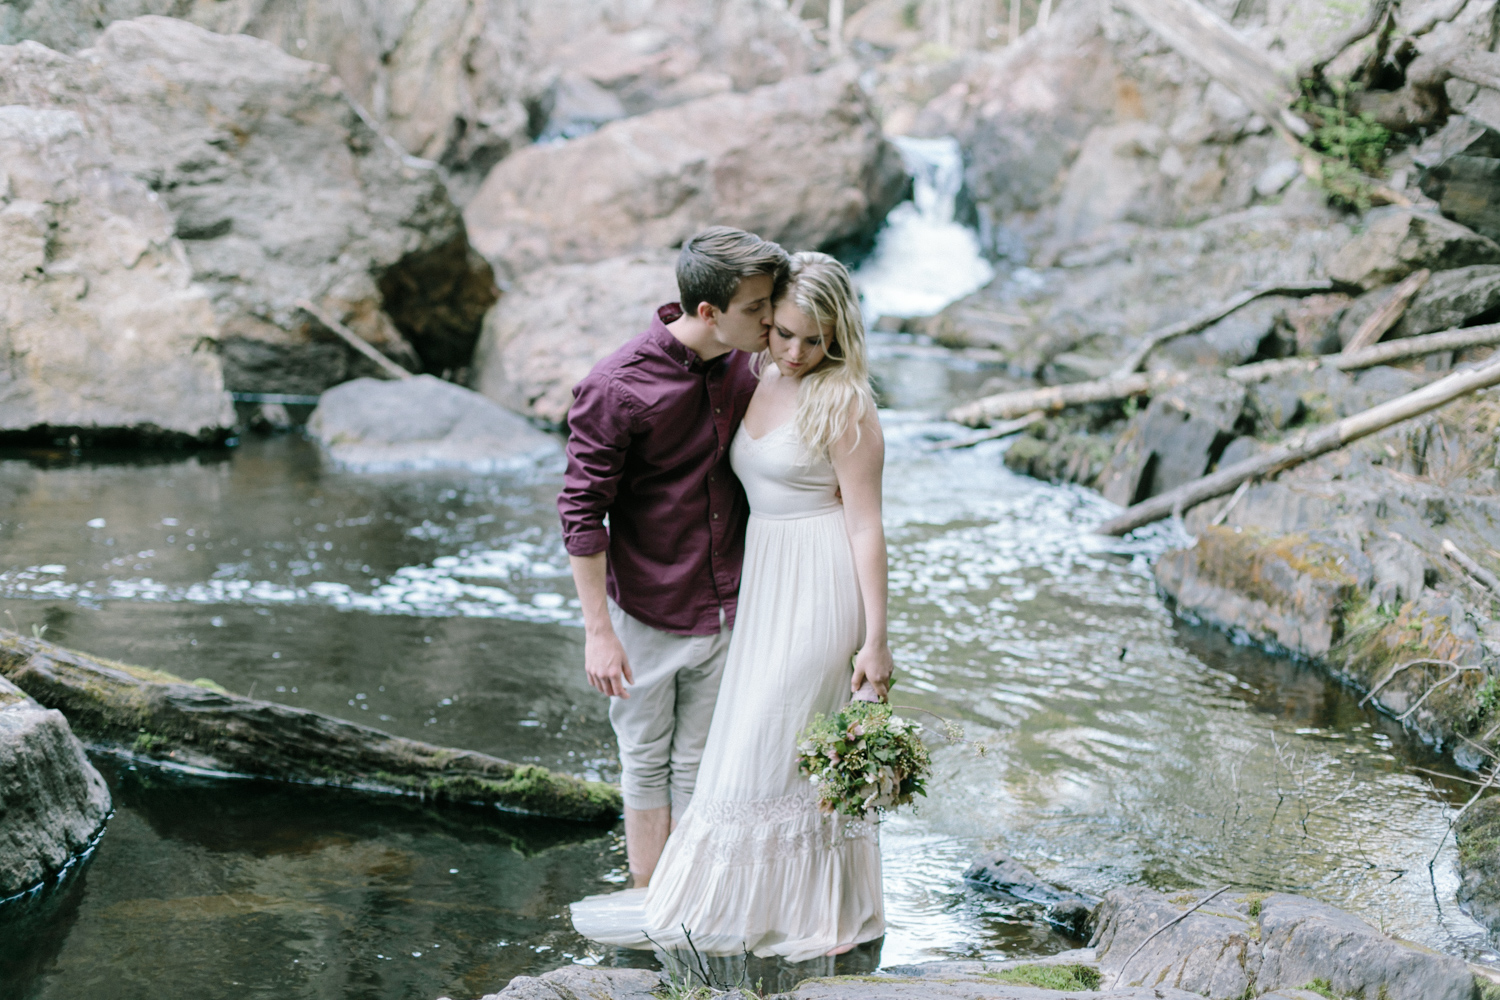 A man kisses his woman at their waterfall engagement session in Northern Michigan